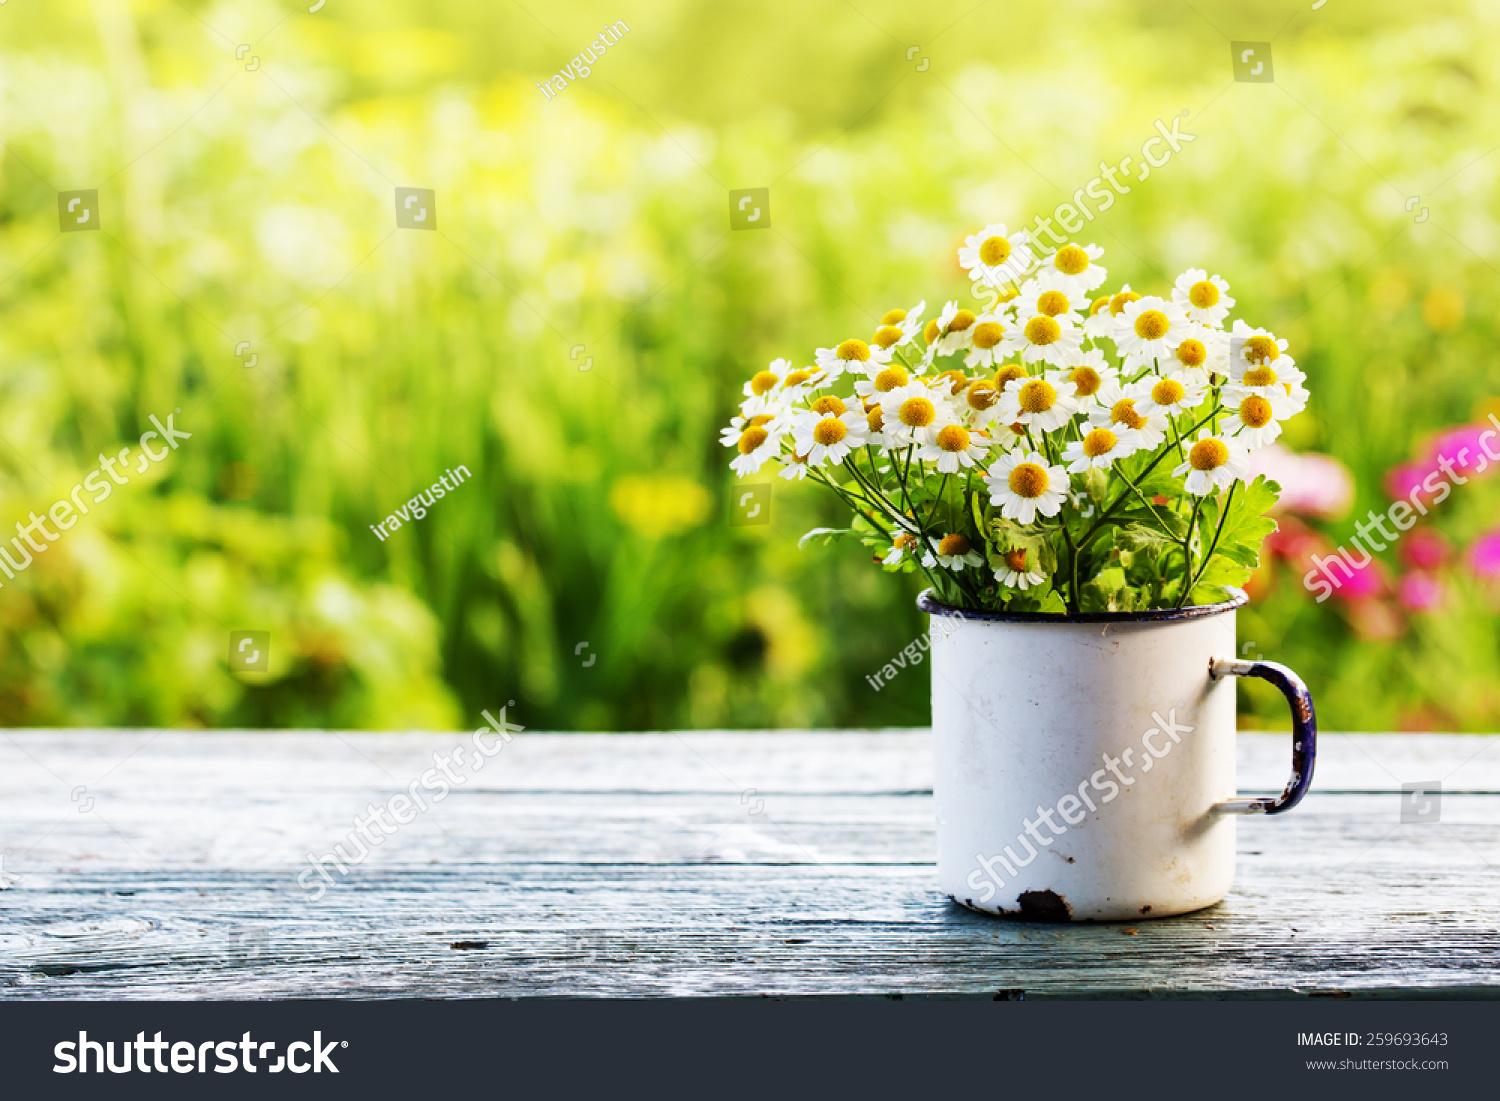 Summer or spring beautiful garden with daisy flowers #259693643